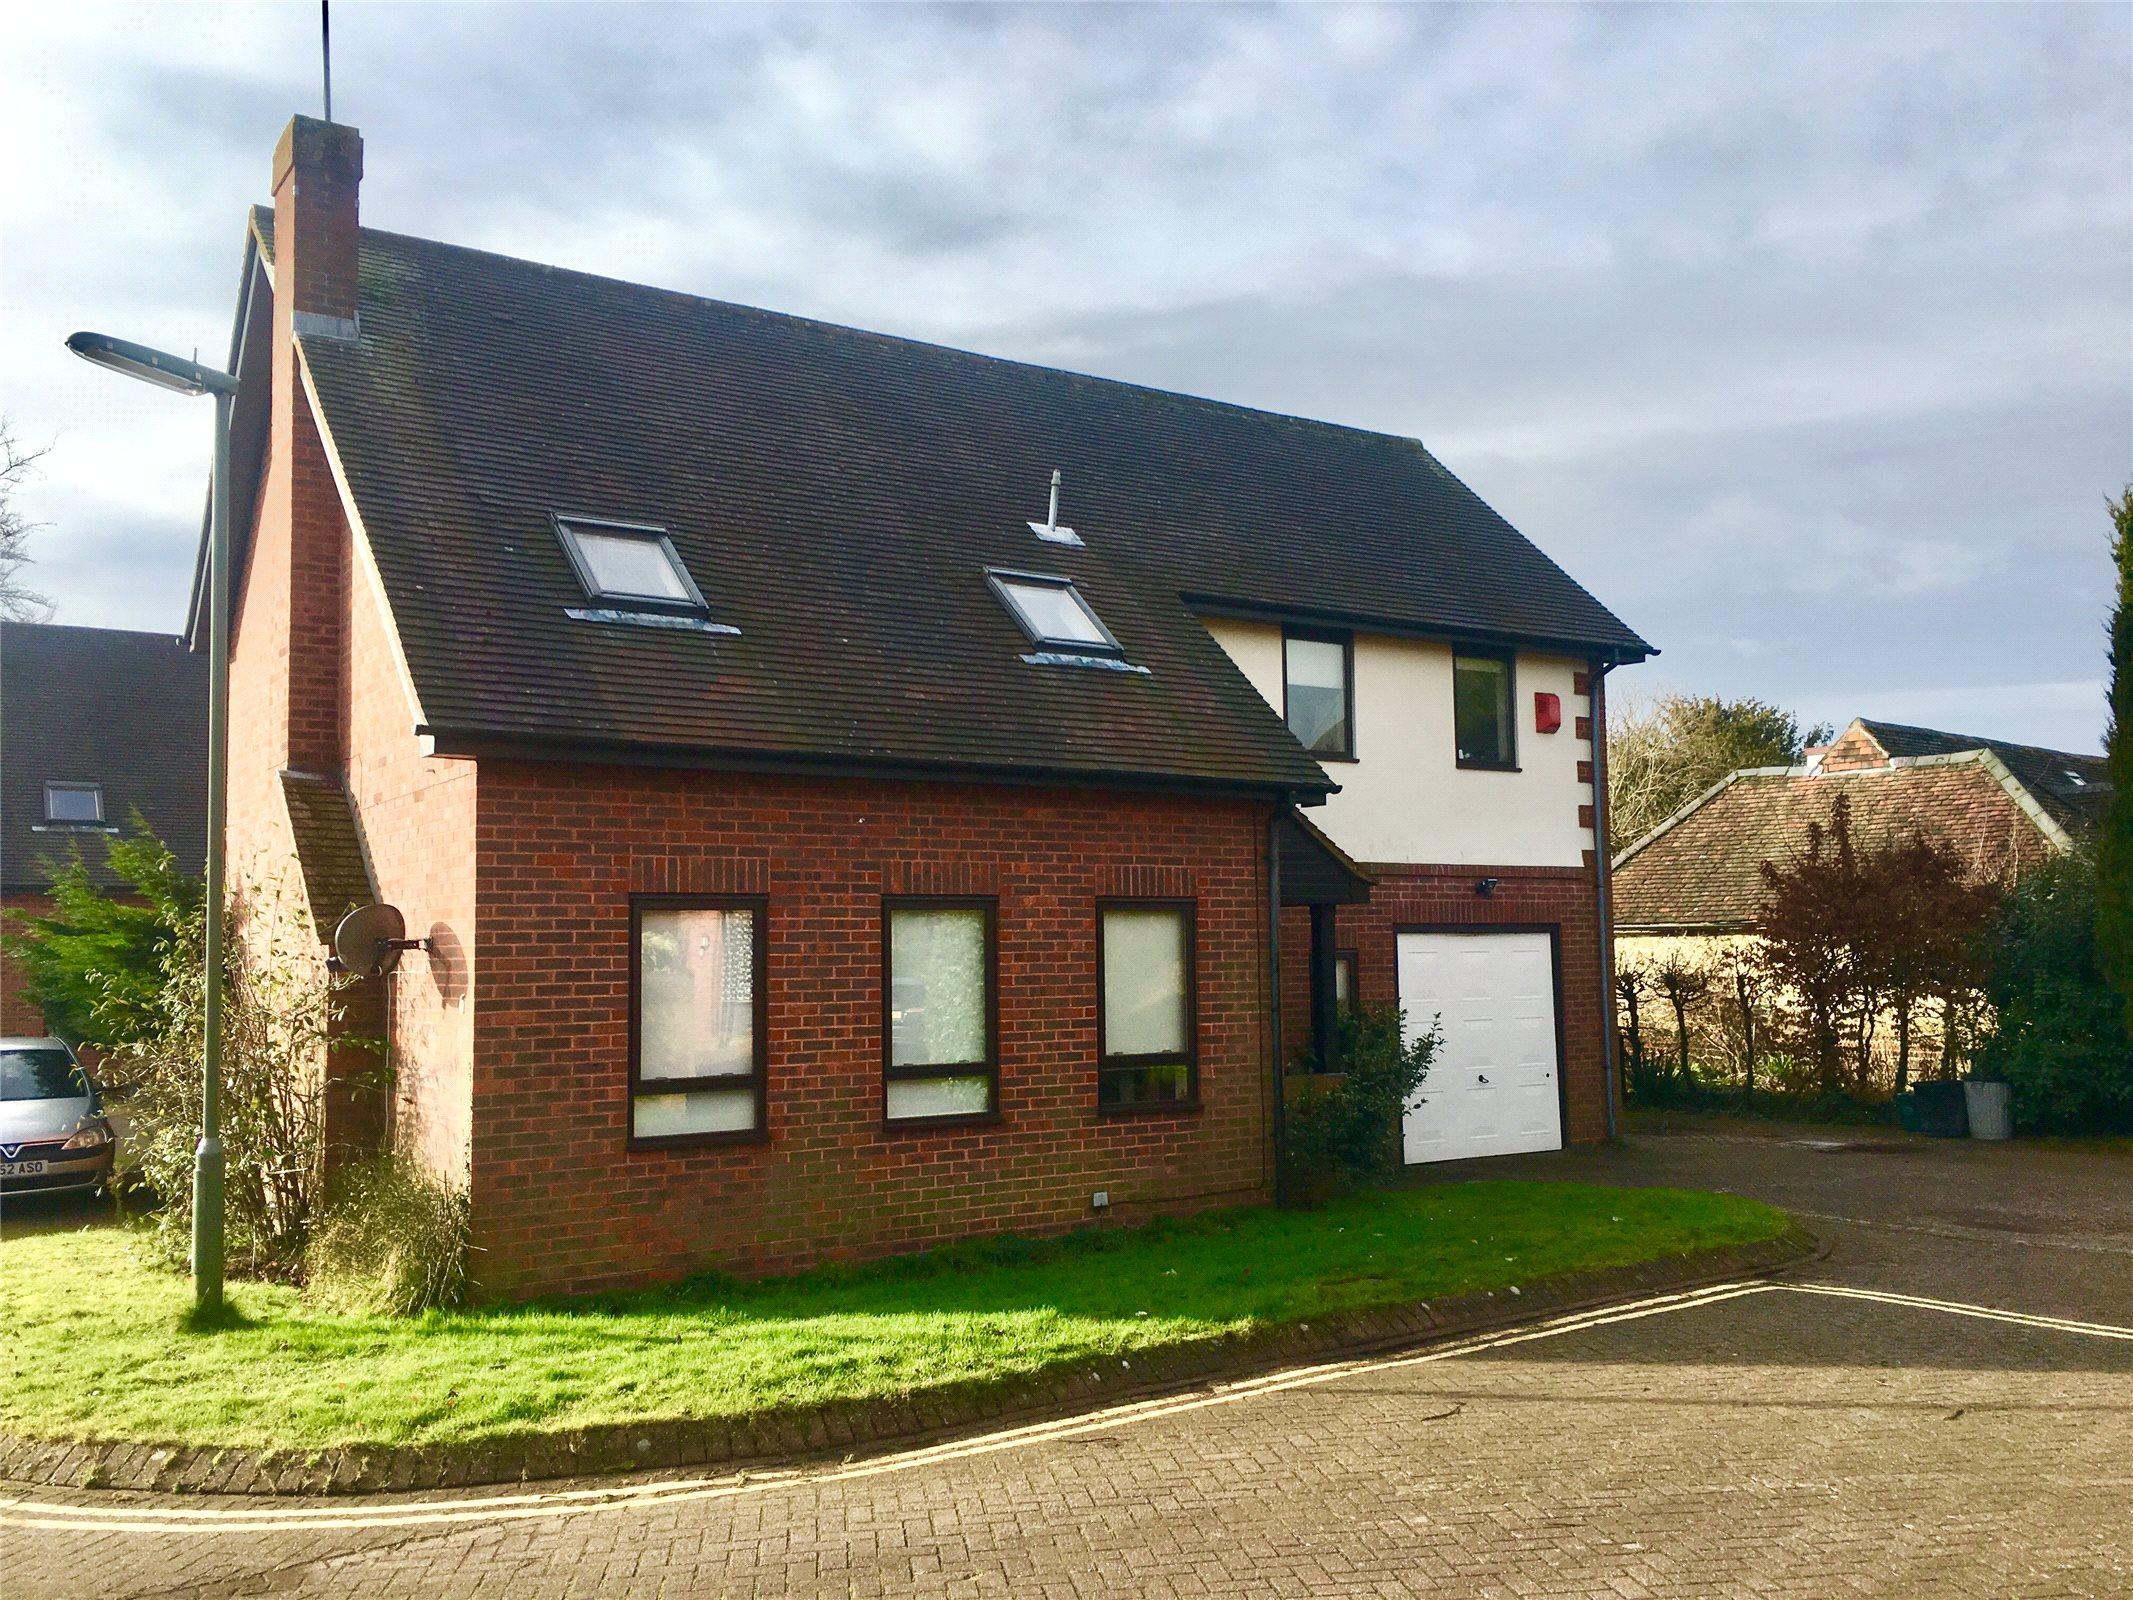 4 Bedrooms Detached House for sale in St Marys Close, Oxted, Surrey, RH8